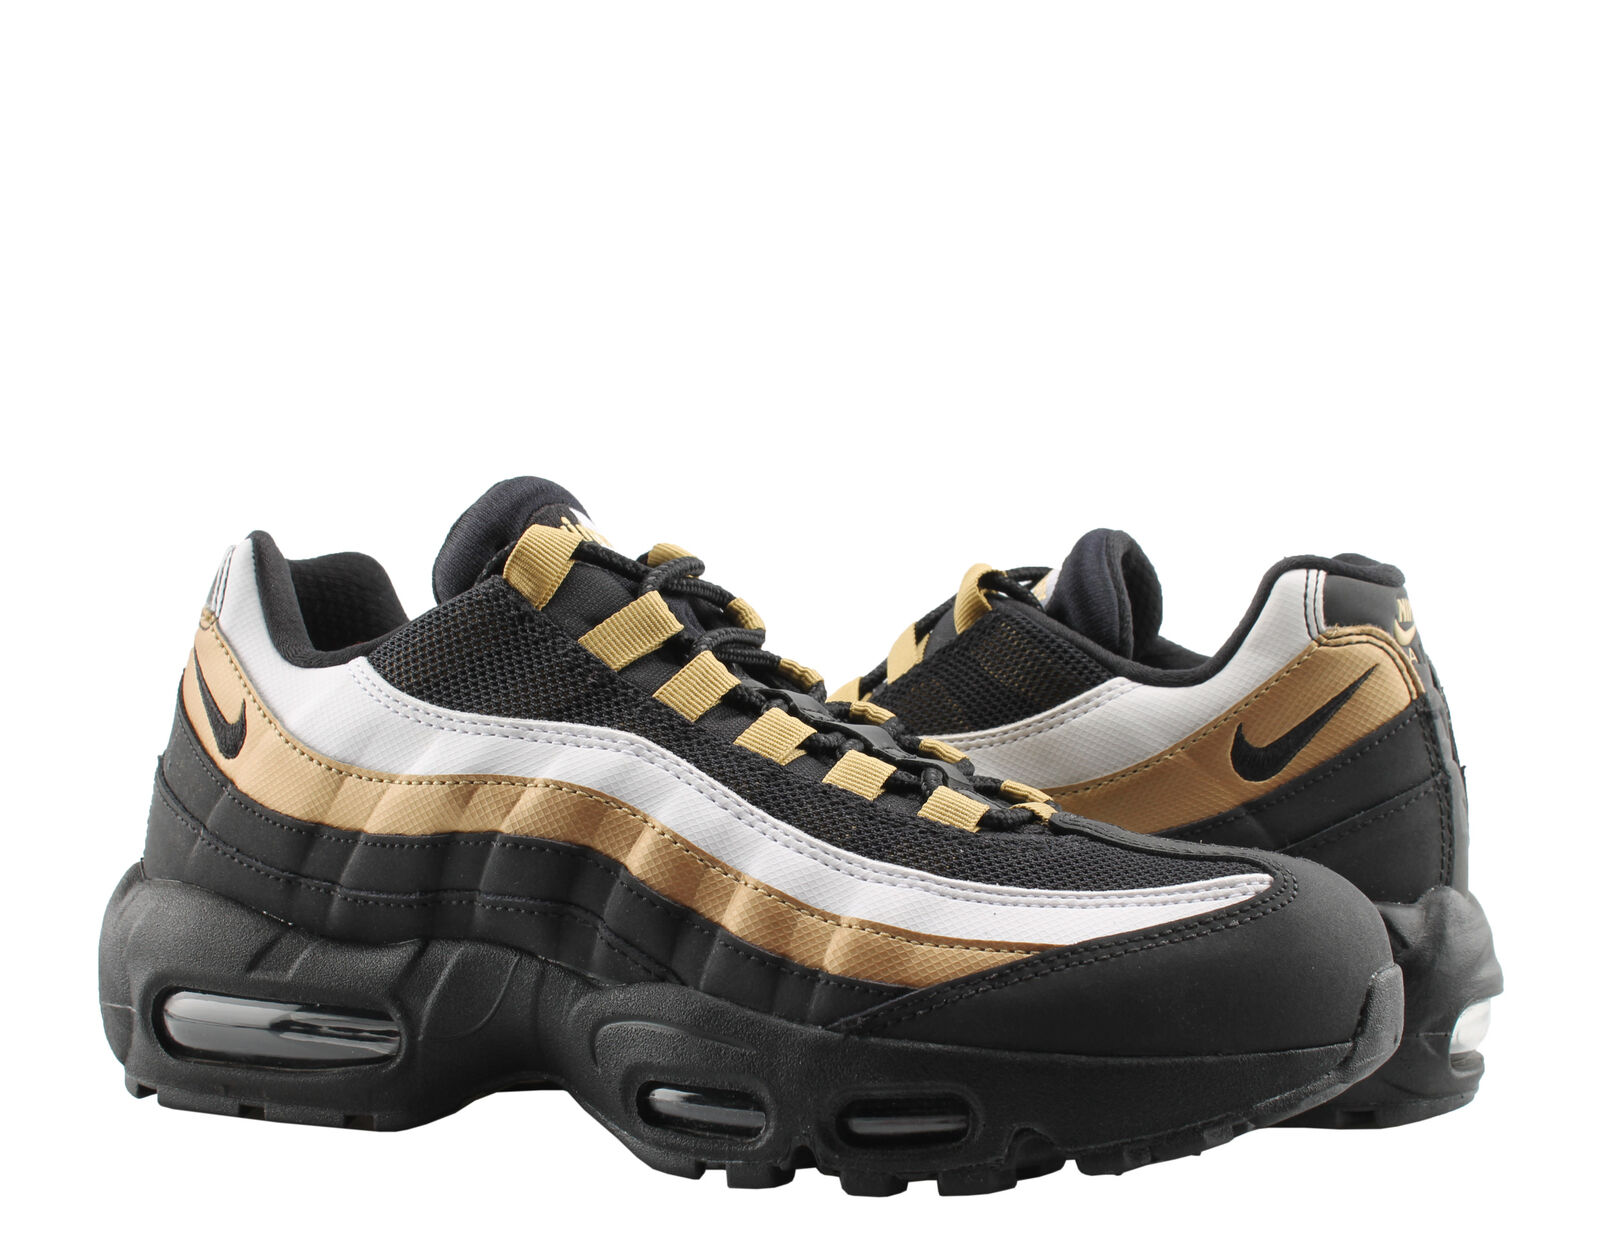 Nike Air  Max 95 OG nero  nero -Metallic oro Men's Running scarpe AT2865 -002  acquista la qualità autentica al 100%